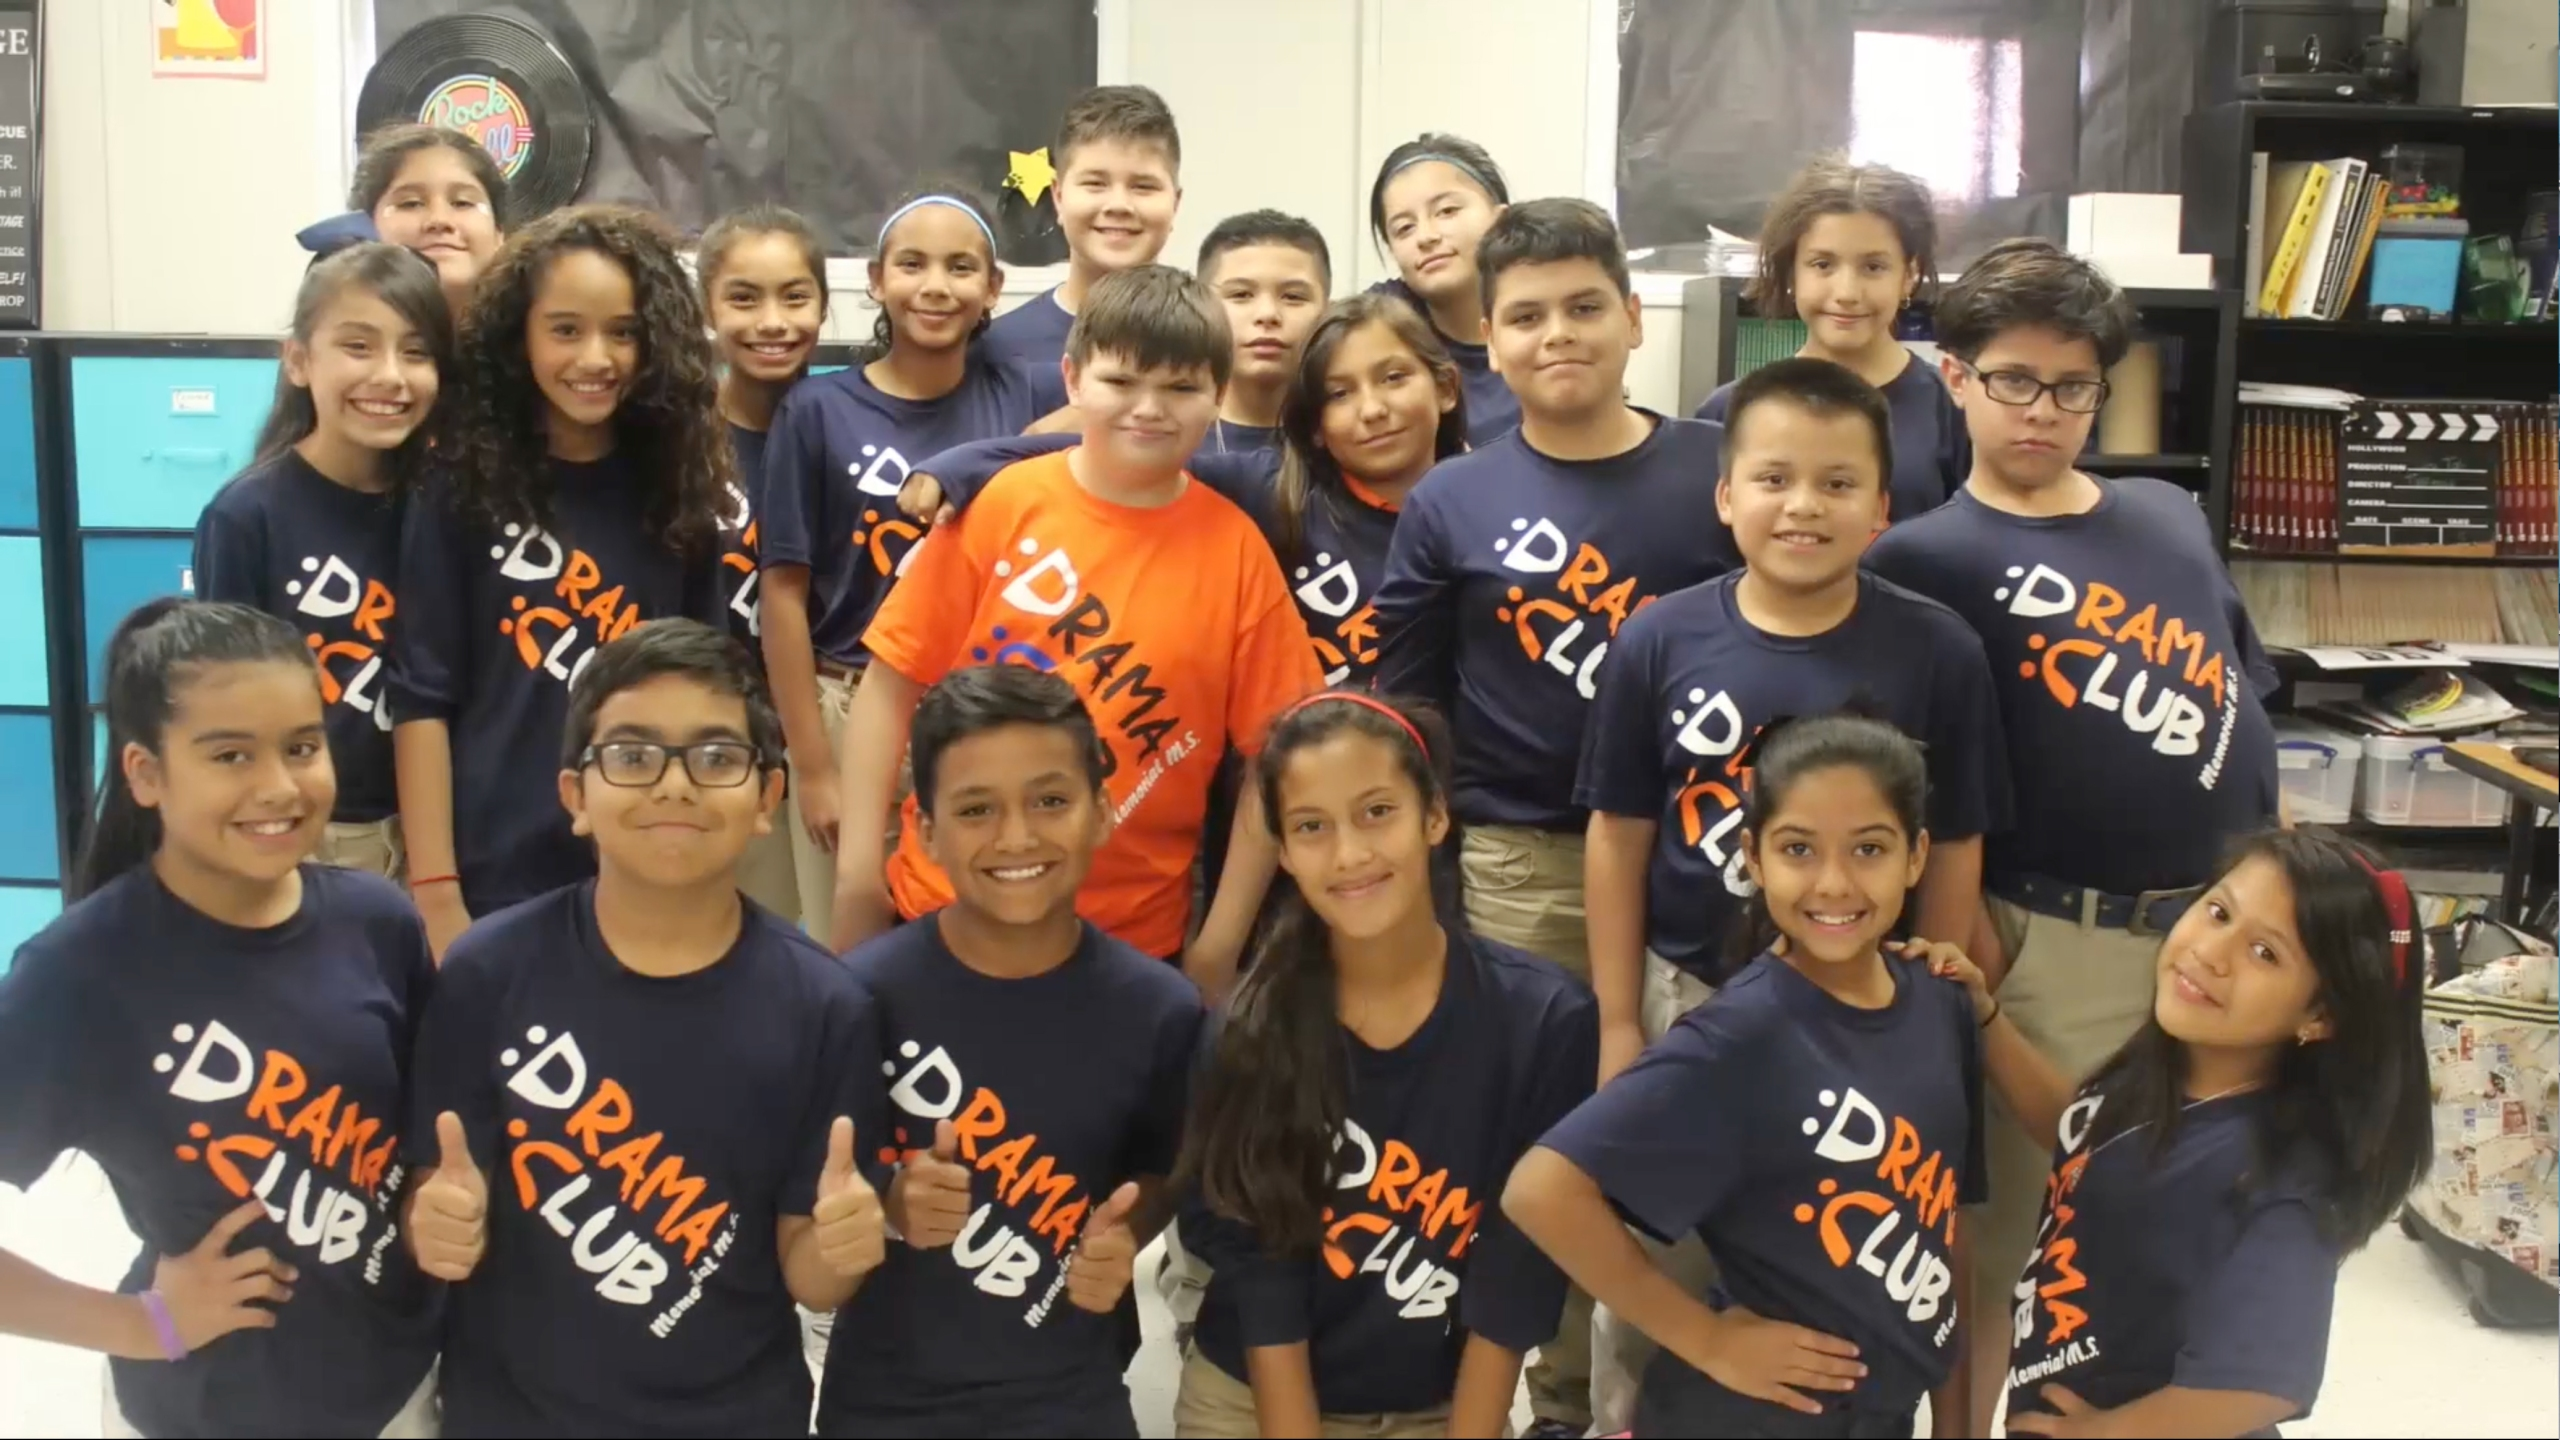 032817 - ECISD's Memorial Middle School wins state video contest - Photo1_1490732769896.jpg